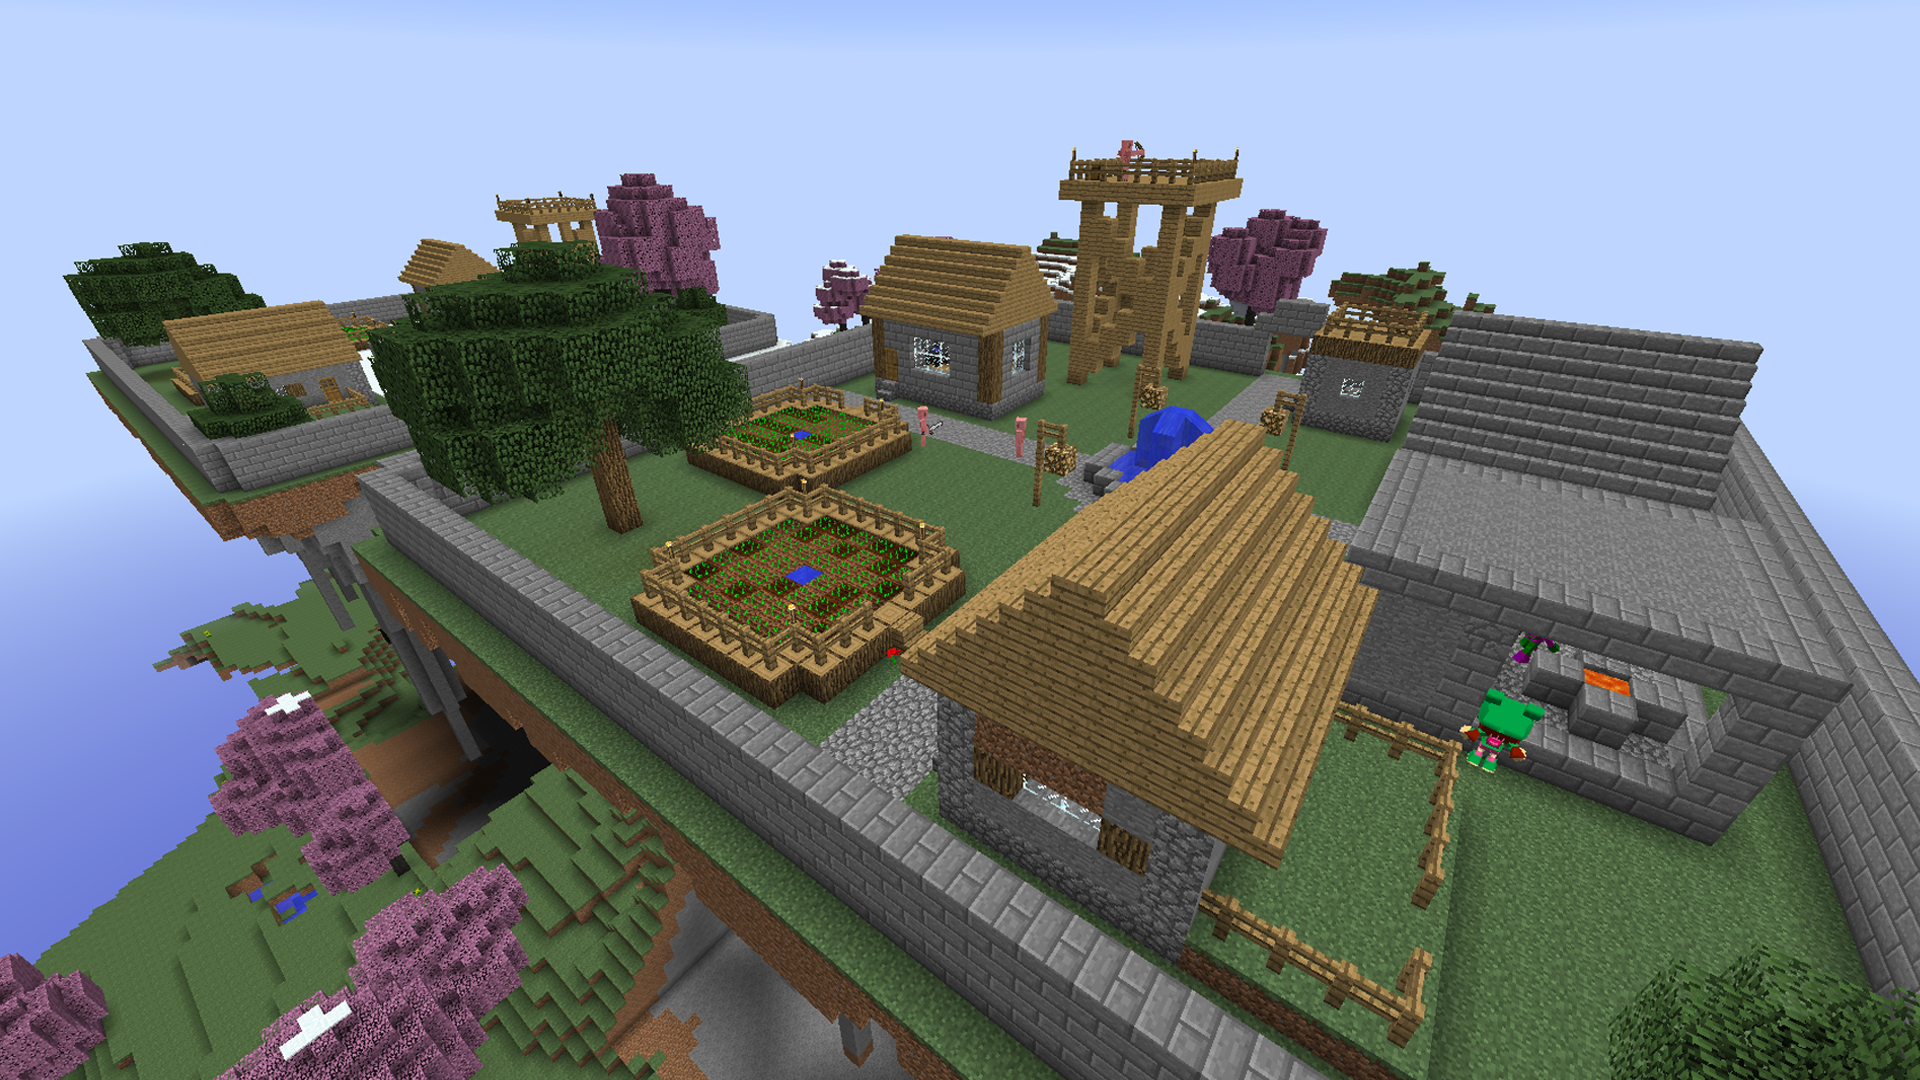 Rediscovered Mod Minecraft Mods Redstone Circuits Village